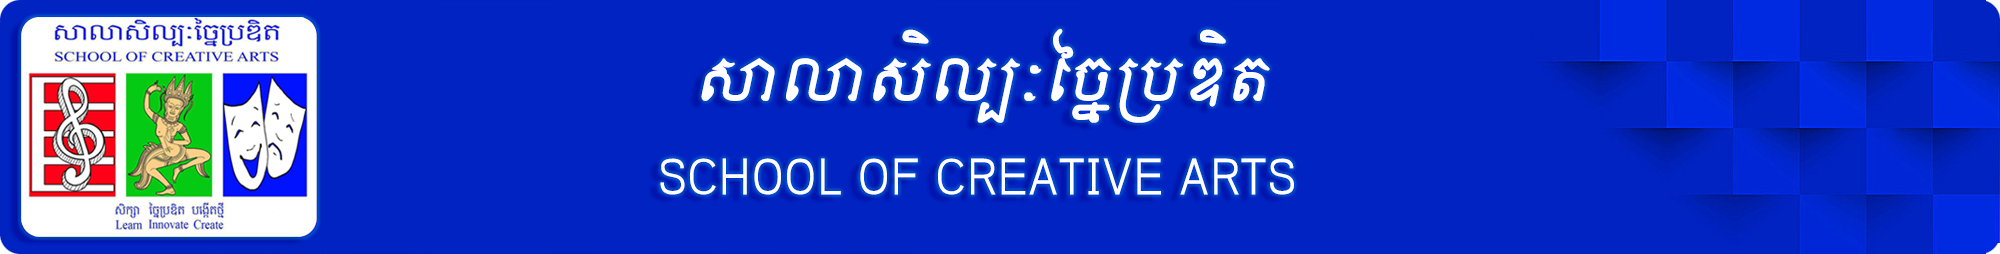 School of Creative Arts - Welcome to The University of Cambodia (UC)